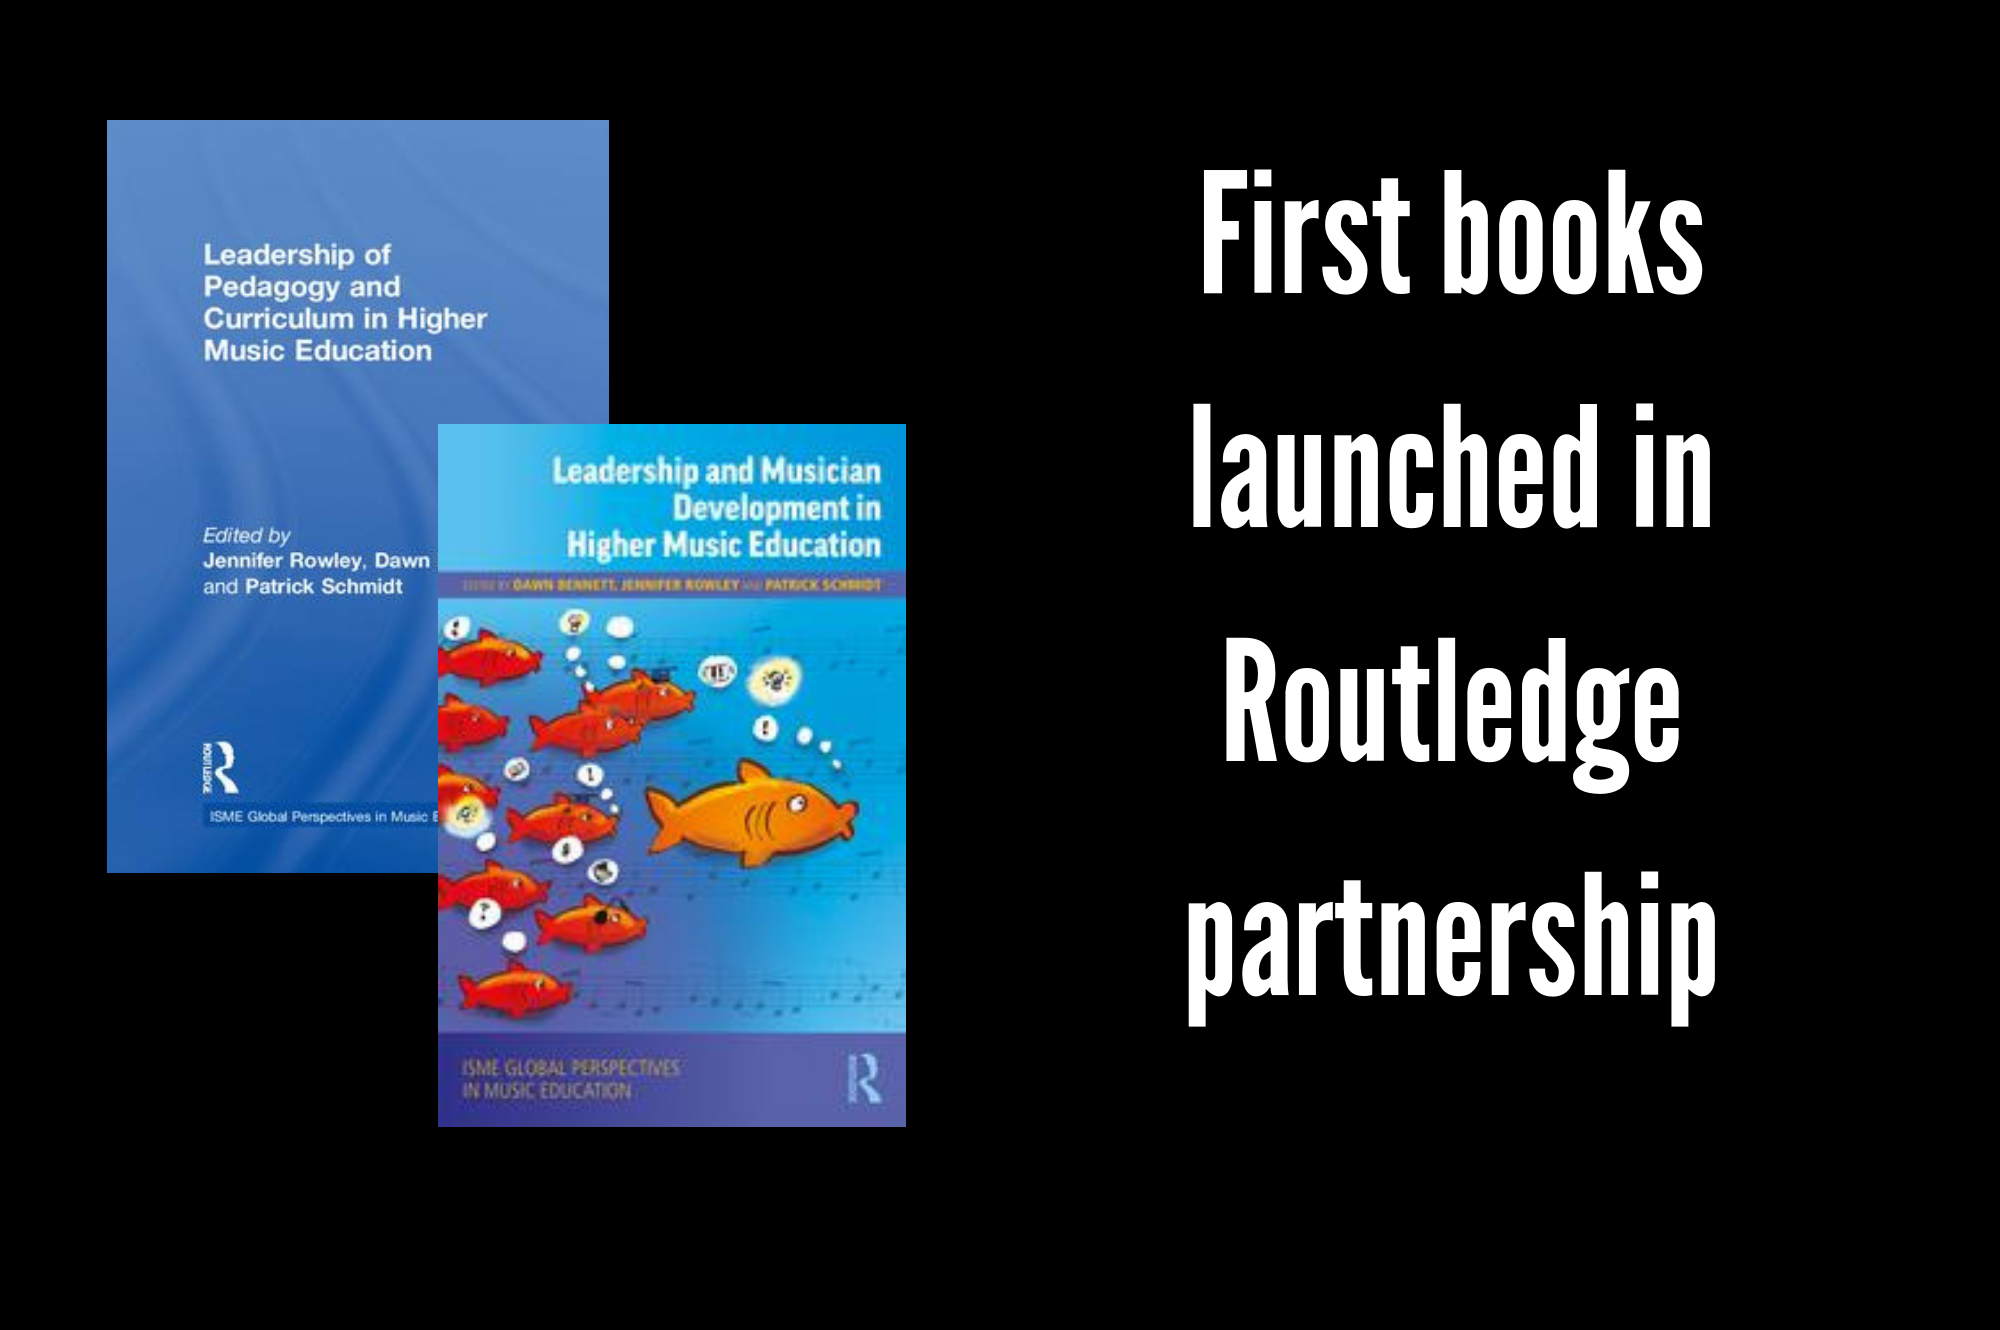 First books launched in Routledge partnership